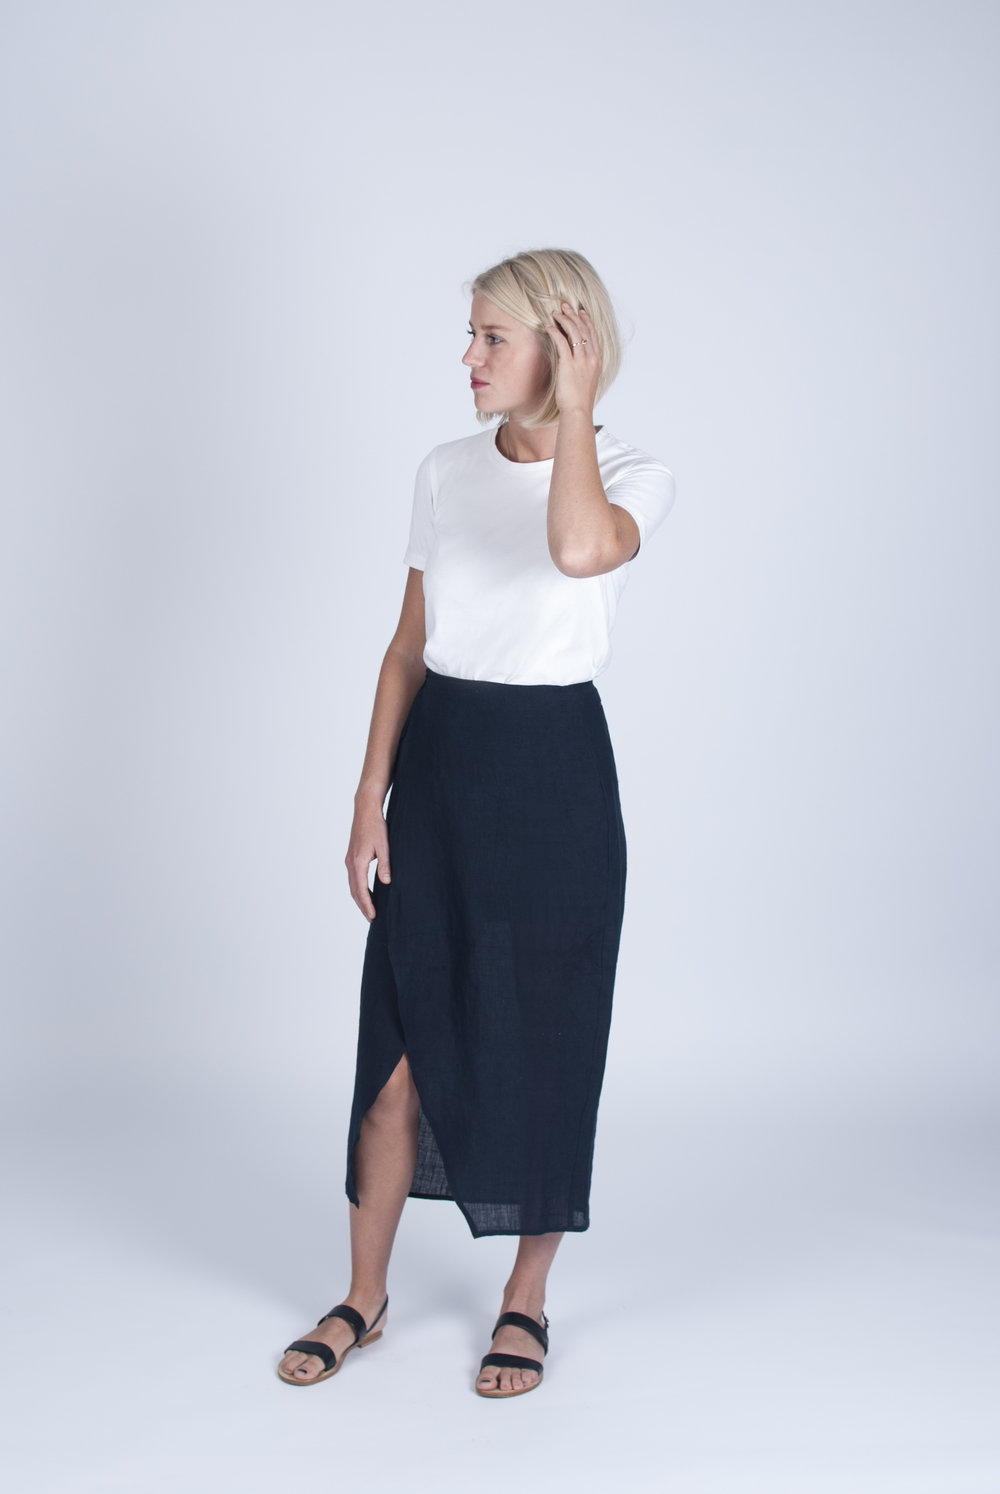 The #026 skirt, styled with the #023 t-shirt.